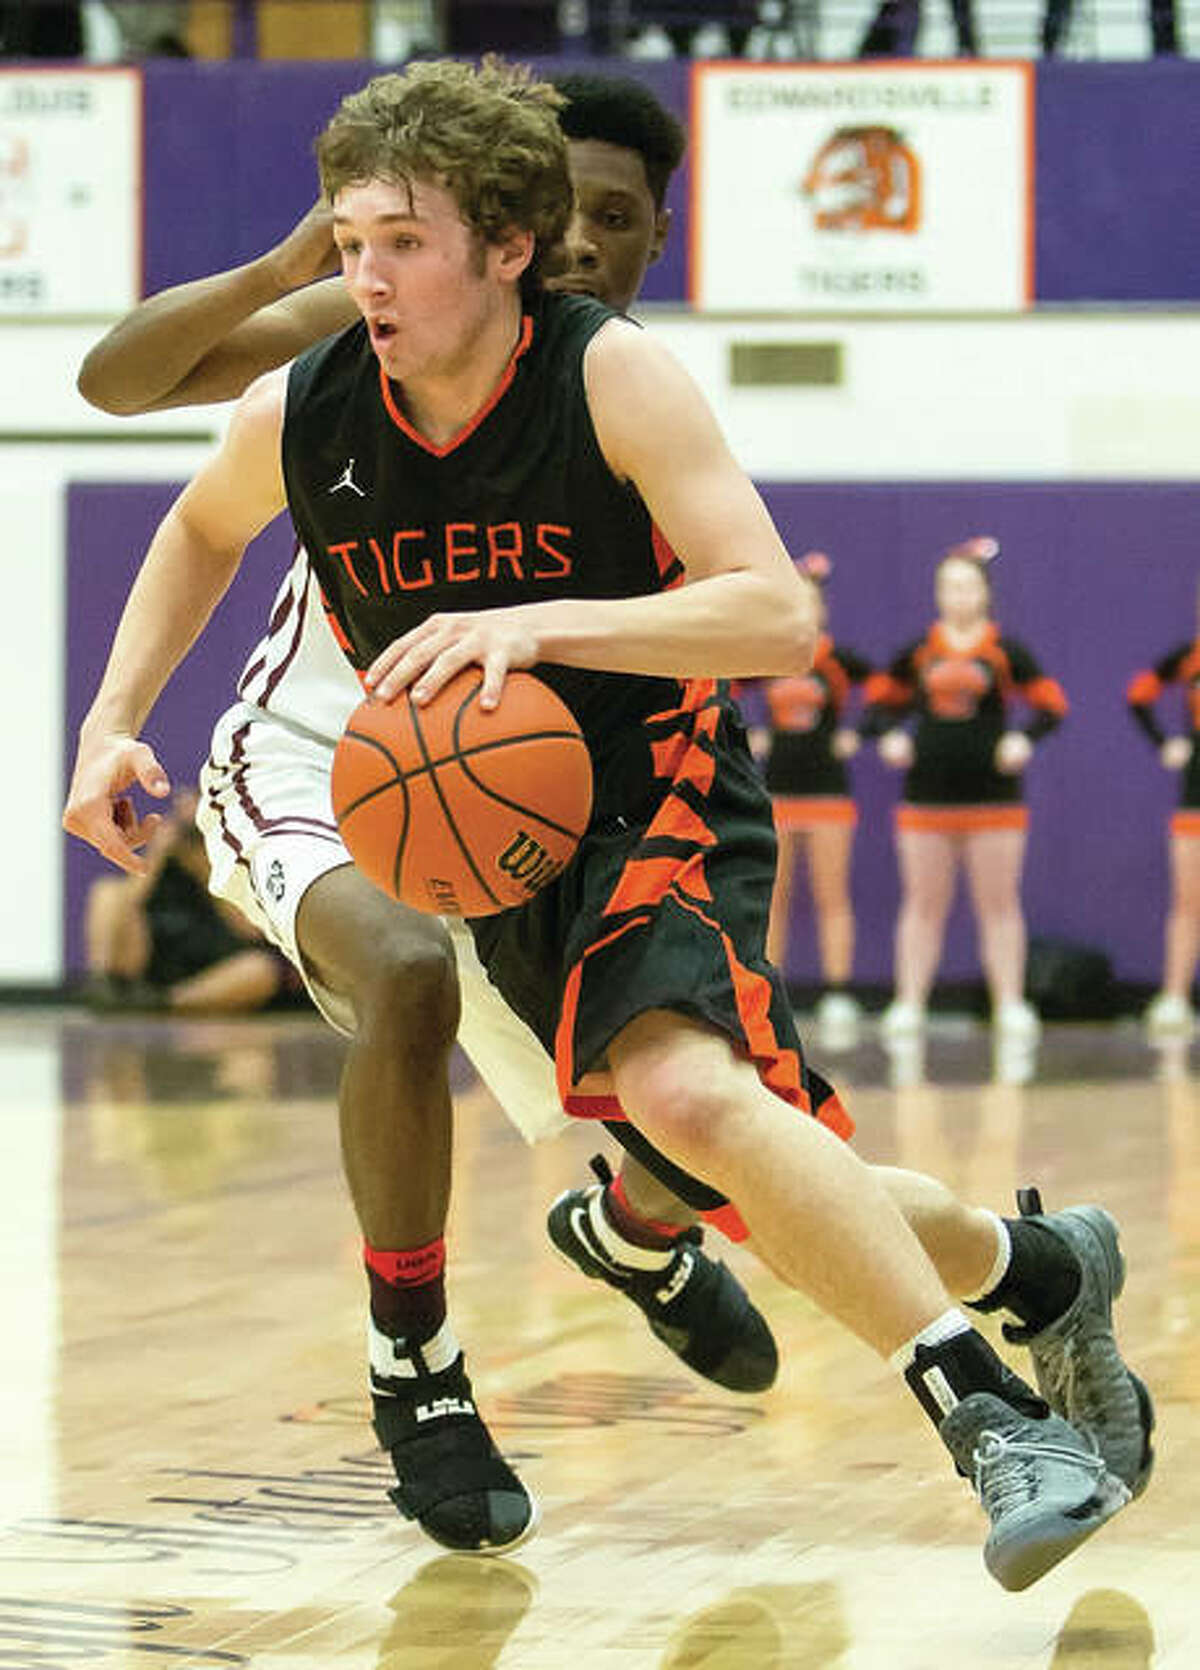 Edwardsville's Jack Marinko, shown in action last season, became the ninth Tiger in the program's history to score 40 points in a game when he put up 42 Tuesday night in Edwardsville.